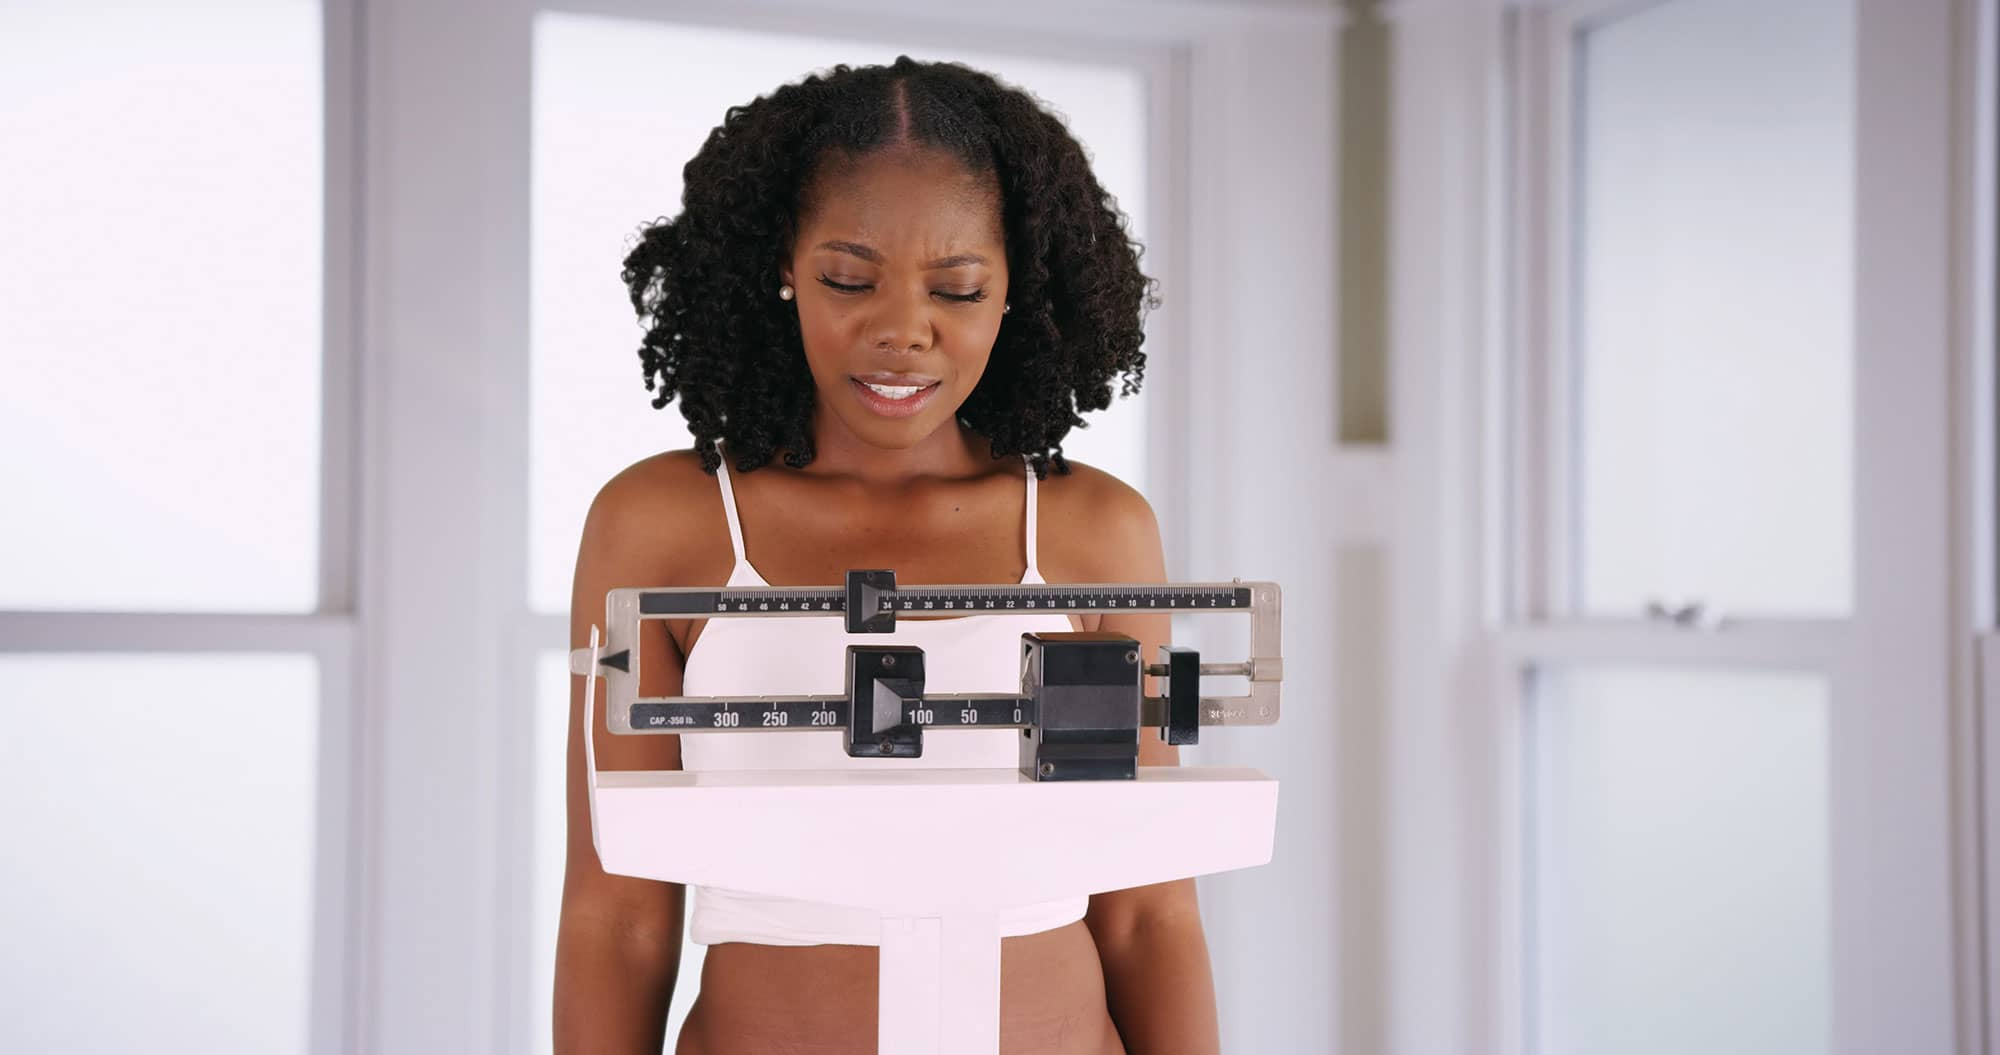 Woman looks at her weight while standing on a scale